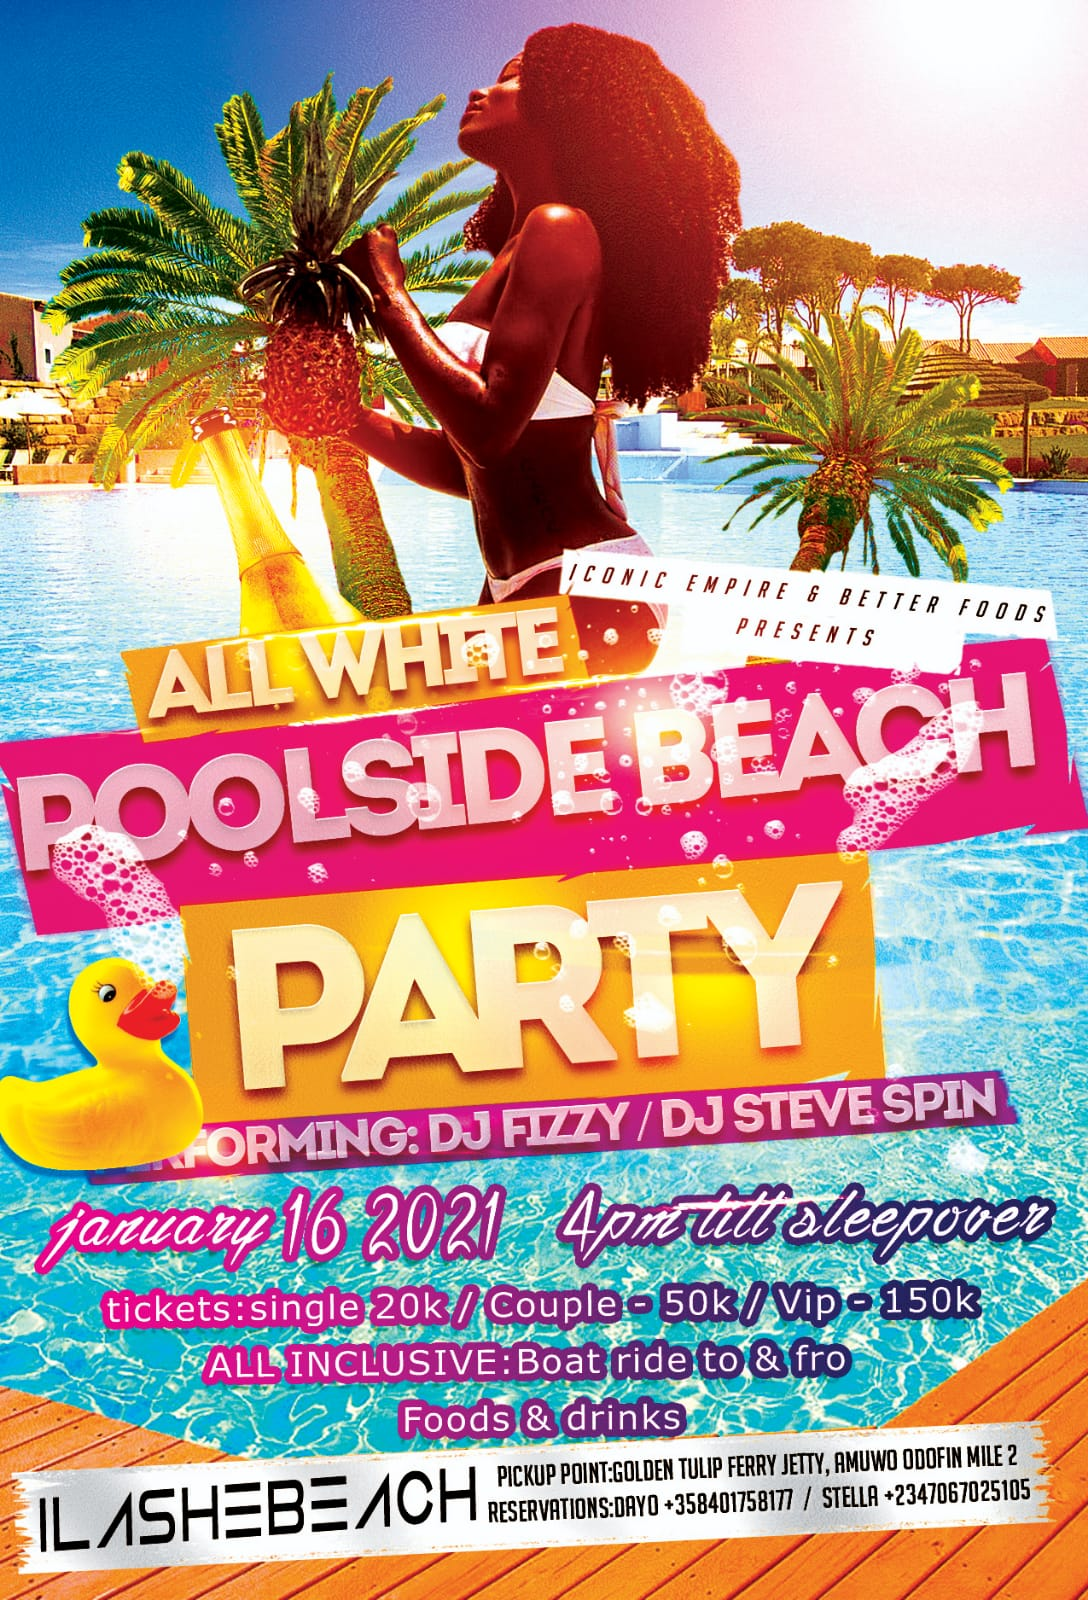 All white beach pool side party Post free event in Nigeria using tickethub.ng, buy and sell tickets to event